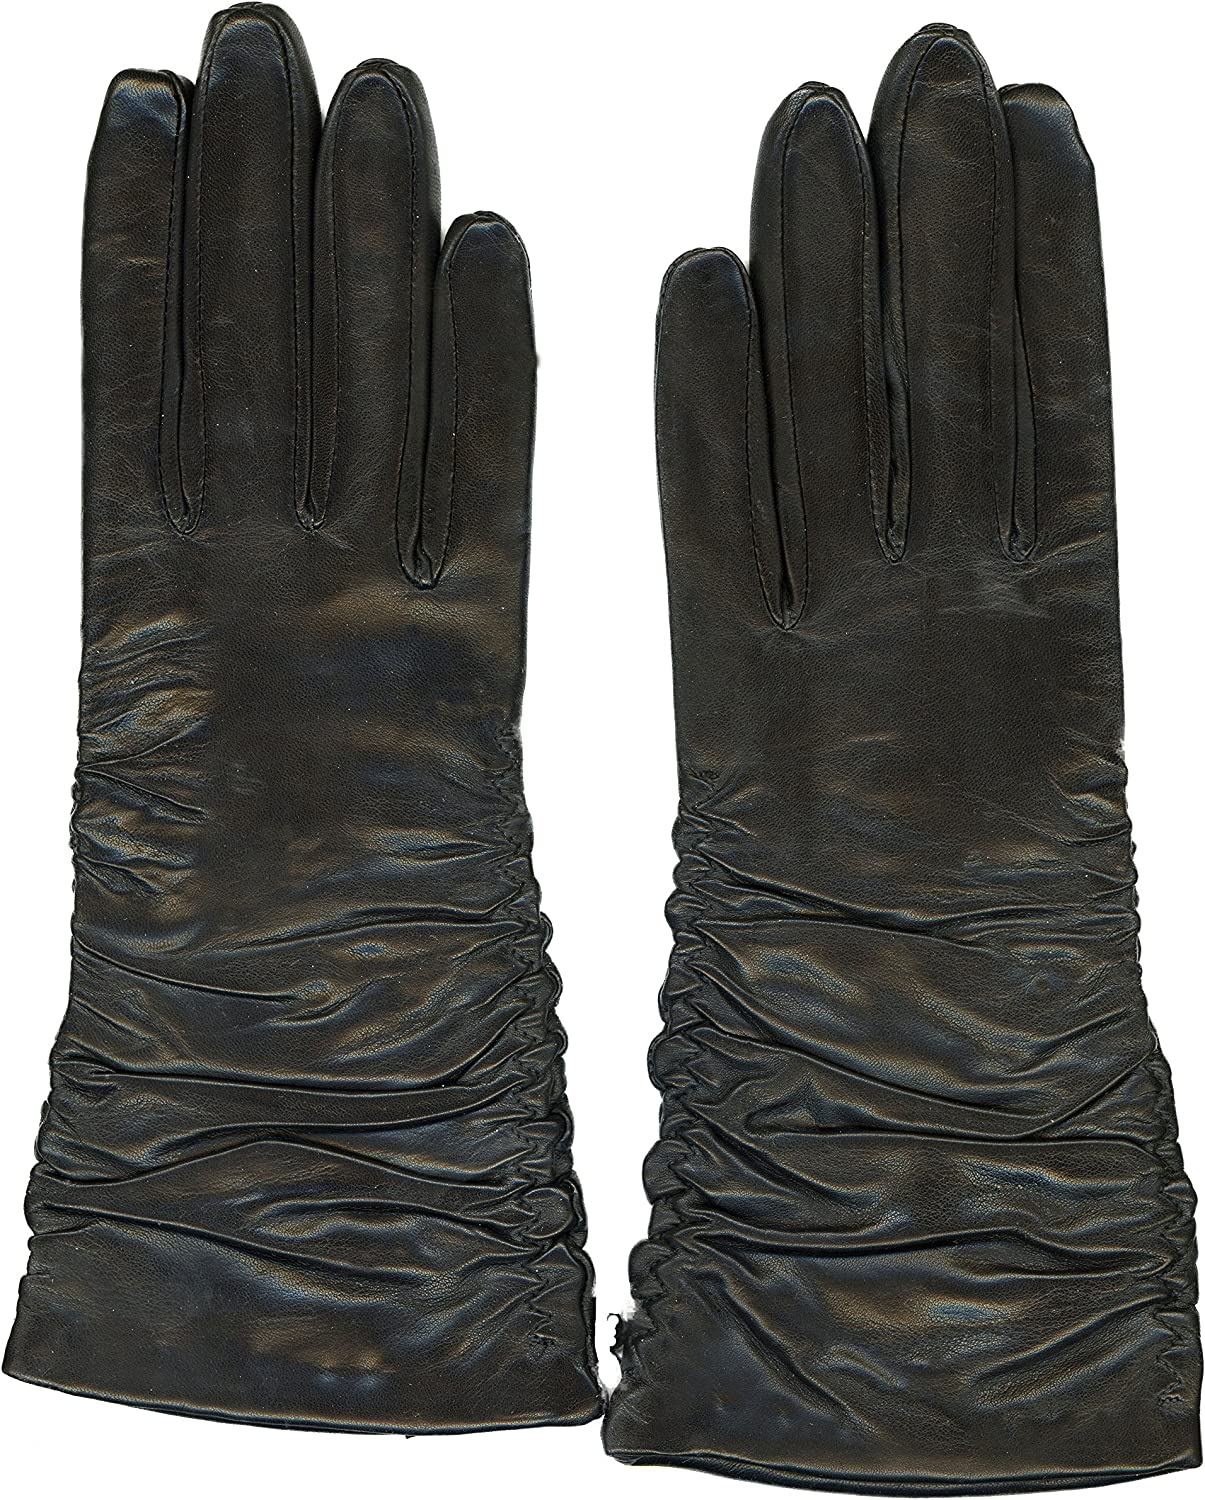 100% Sheepskin Leather Over item Max 57% OFF handling ☆ Gloves for Women btn L 3 Ruched Style